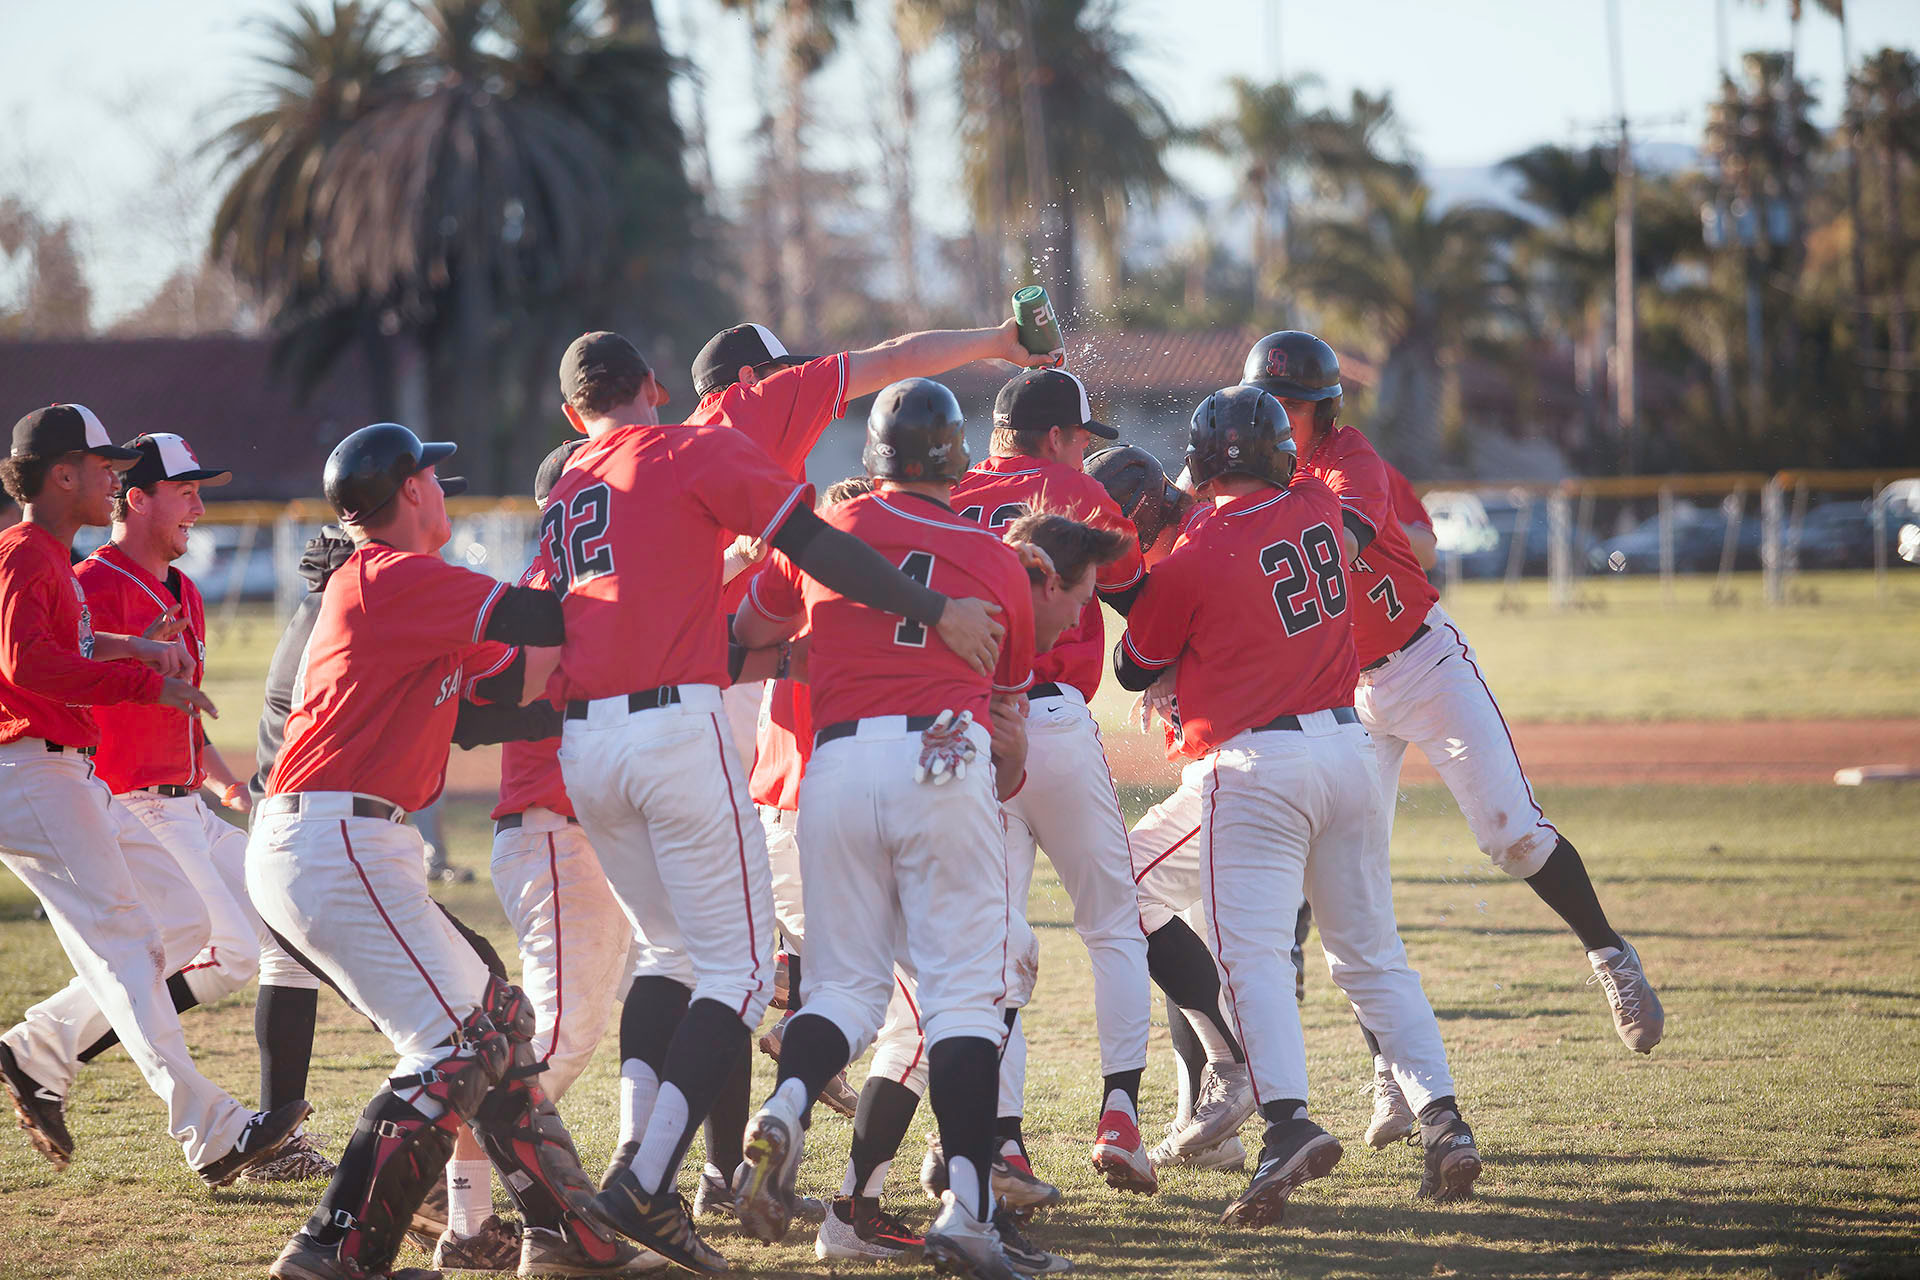 The City College Vaqueros celebrate their victory against the Cerritos College Falcons on Saturday, Jan. 28, at Pershing Park. The Vaqueros beat the Falcons, 3-2.